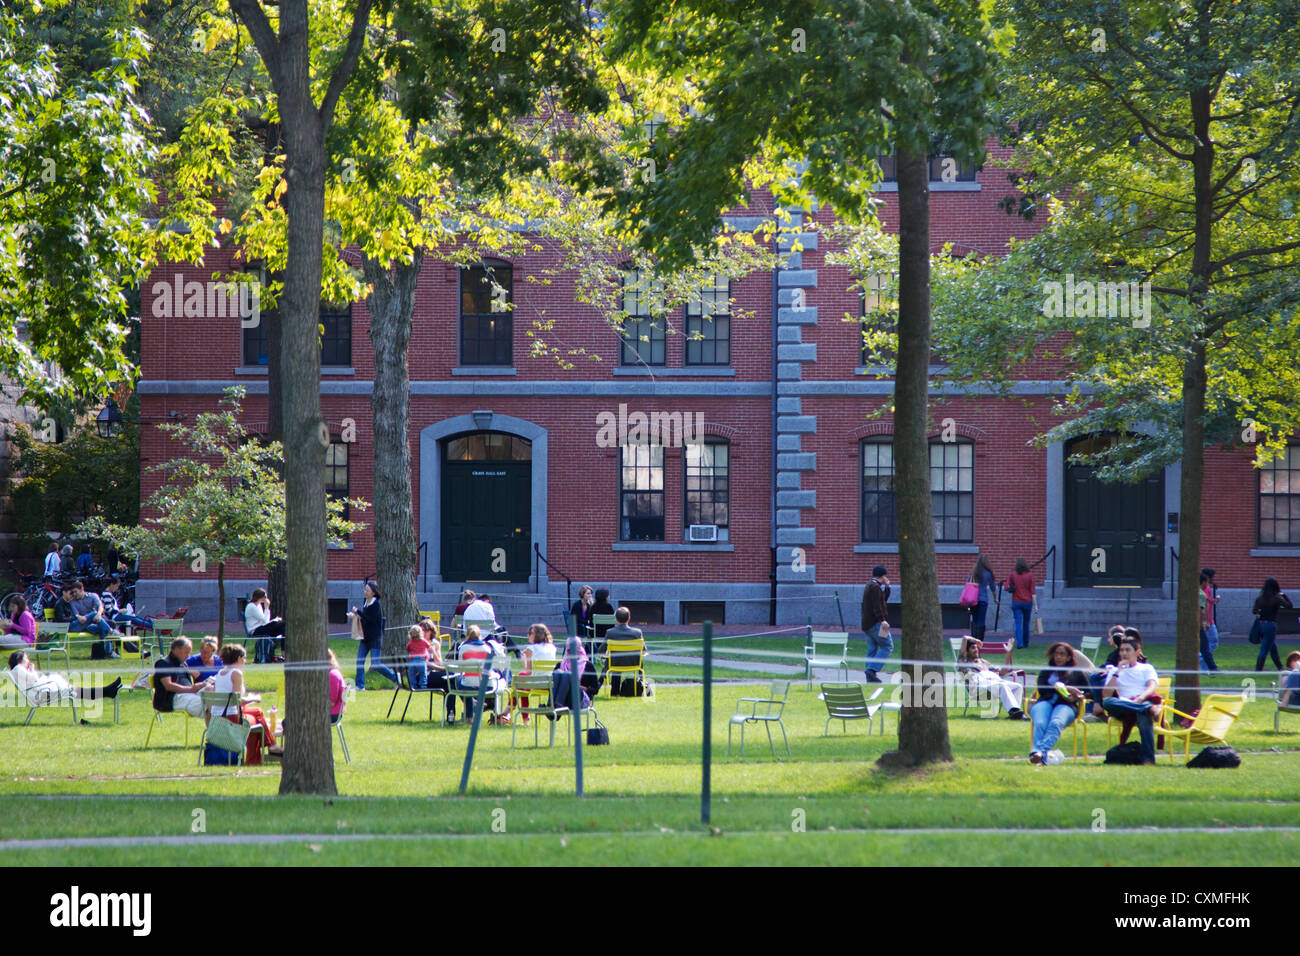 Students and tourists rest in lawn chairs in Harvard Yard, the old heart of Harvard University campus on September - Stock Image